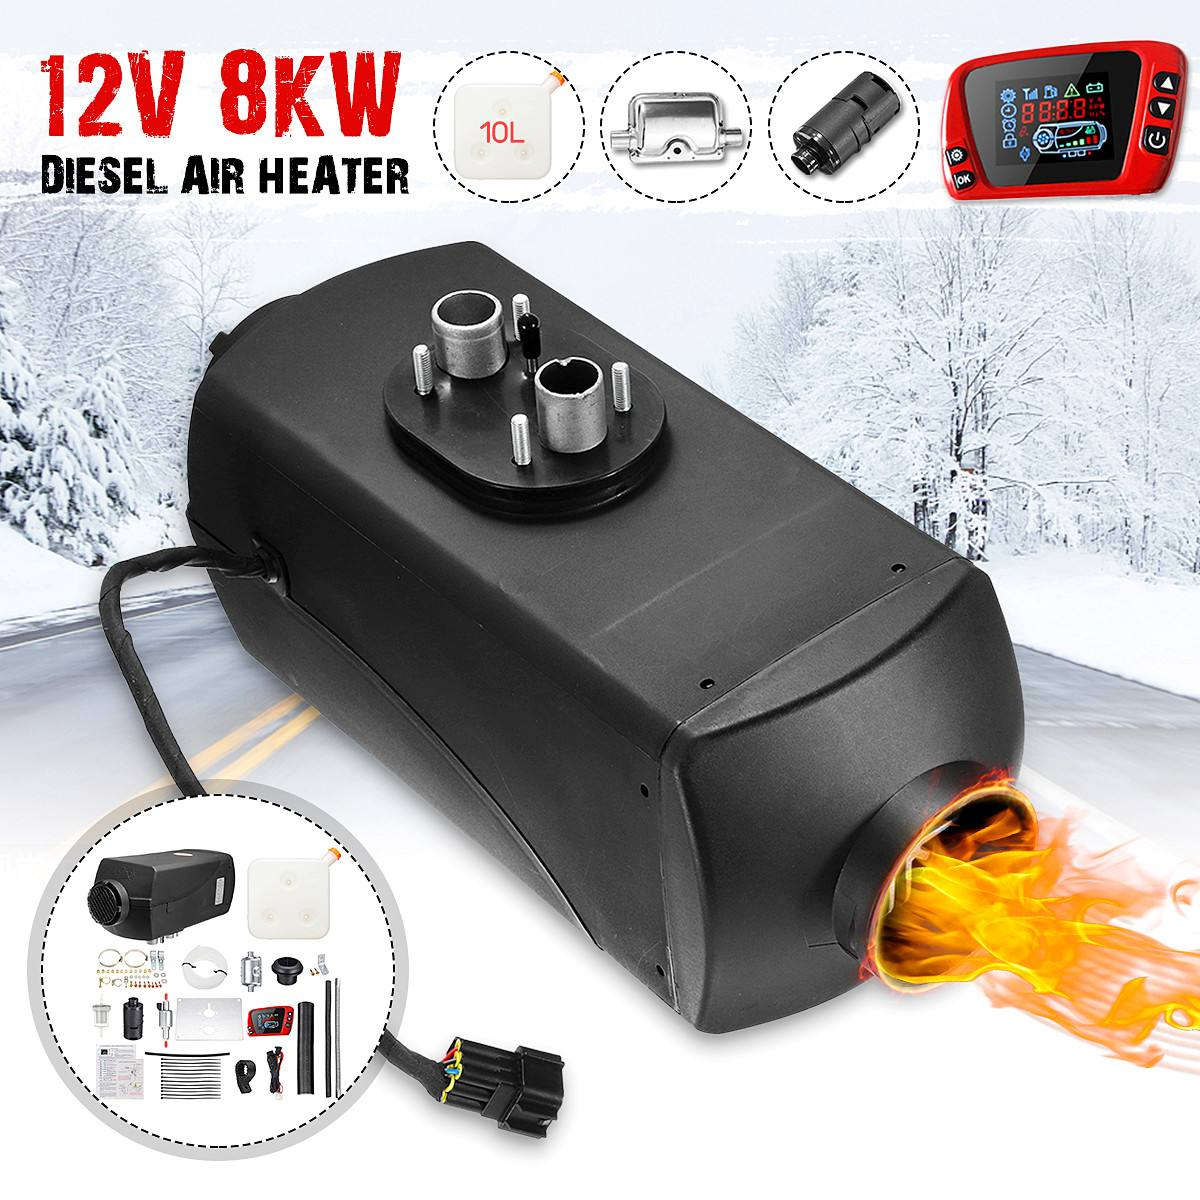 LCD Switch 10L Tank Air diesel Heater For Car Truck Bus 8000W 8KW 12V Silencer